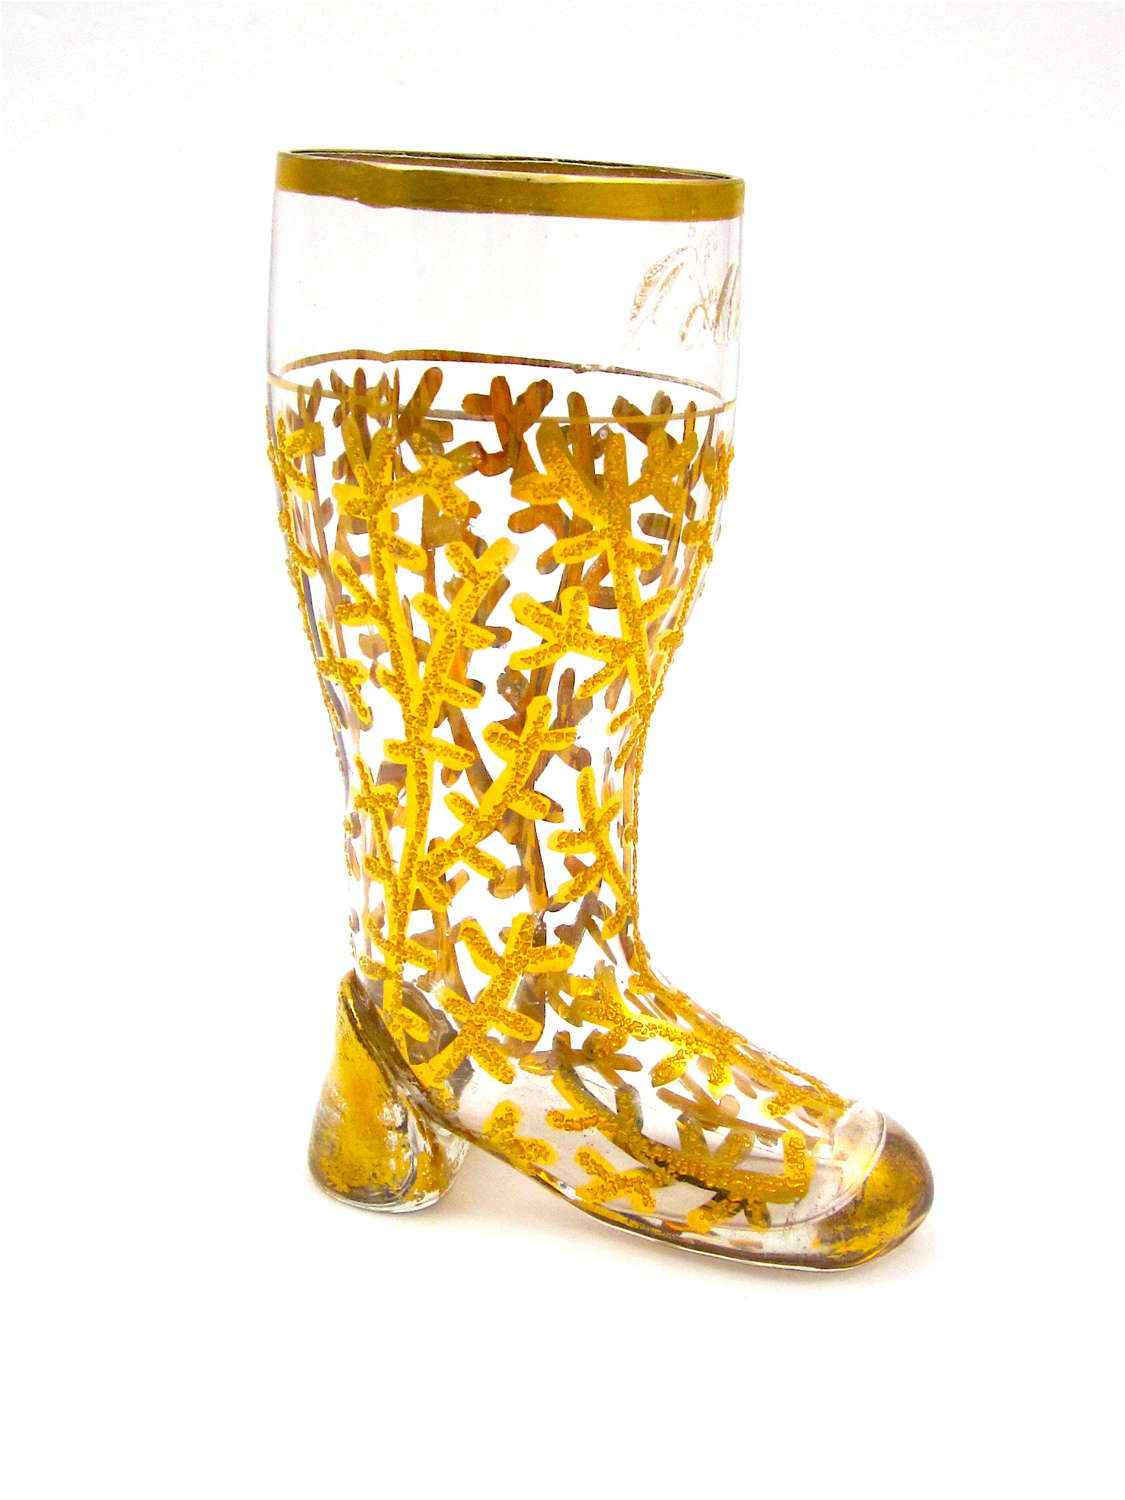 Antique Bohemian Whimsical ClearGlass Gold Encrusted Boot.